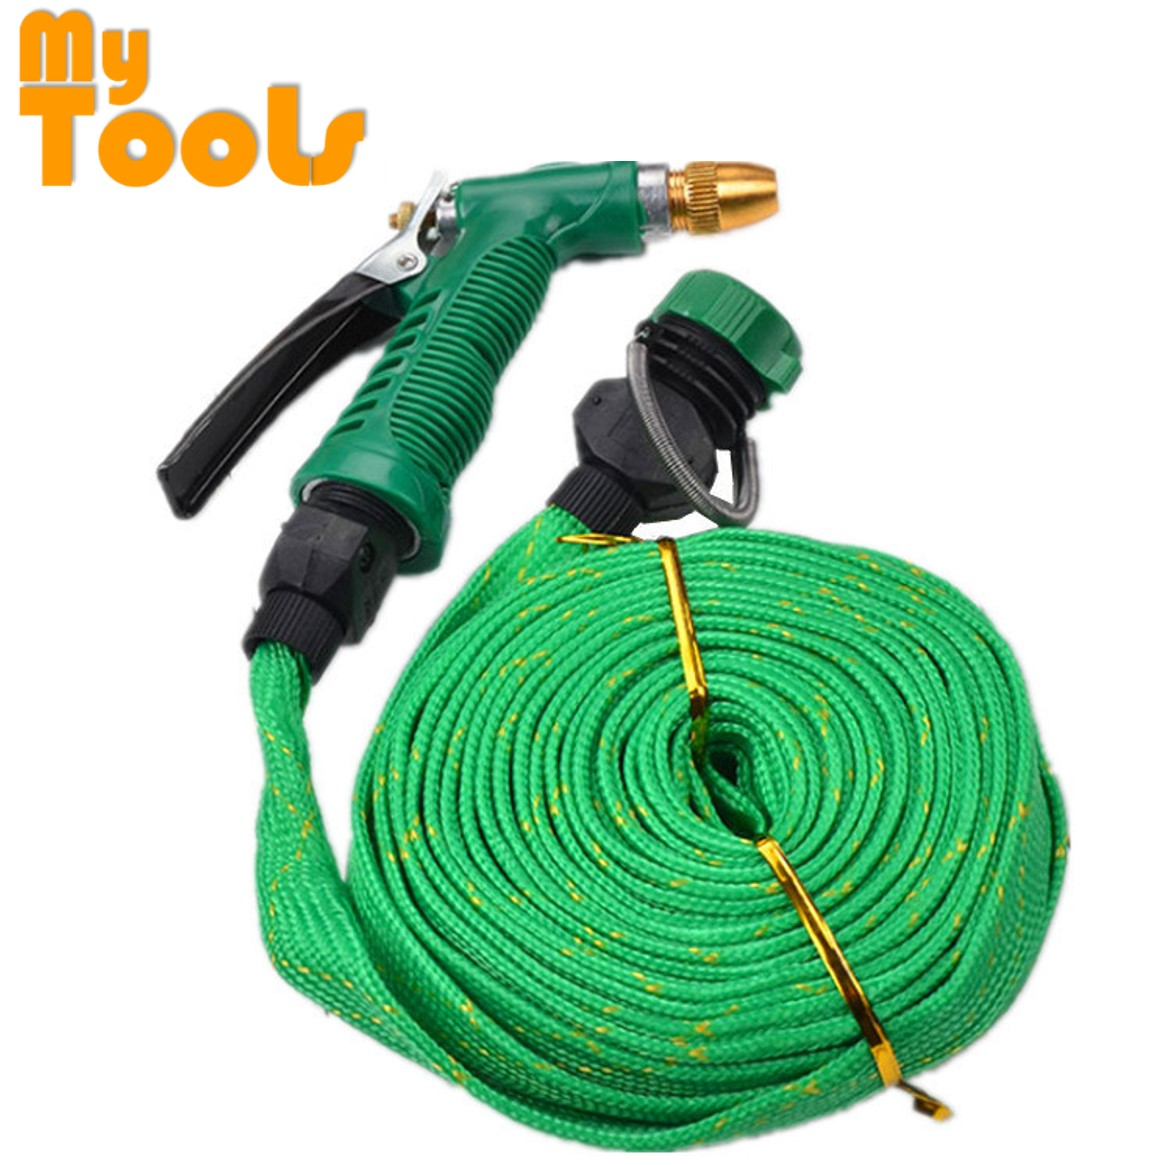 Mytools 15 Meter Mtr House Garden Pipe Hose Spray Water Gun Car Wash